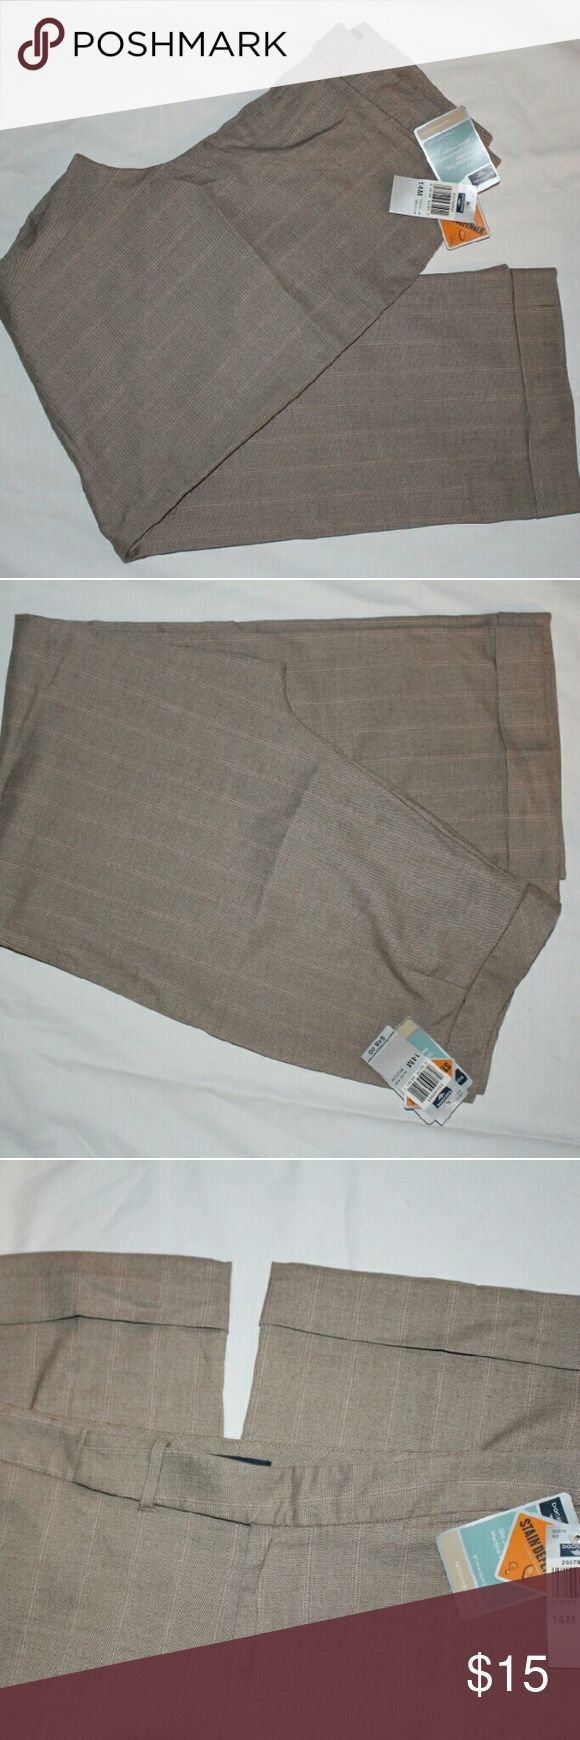 Dockers Beige Women's Sz 14M Trousers Straight Leg New with Tags DOCKERS trousers for ladies size 14M. They are straight leg, beige, stripped, microblend, inseam Medium, sits below waist, stain defender. Dockers Pants Trousers